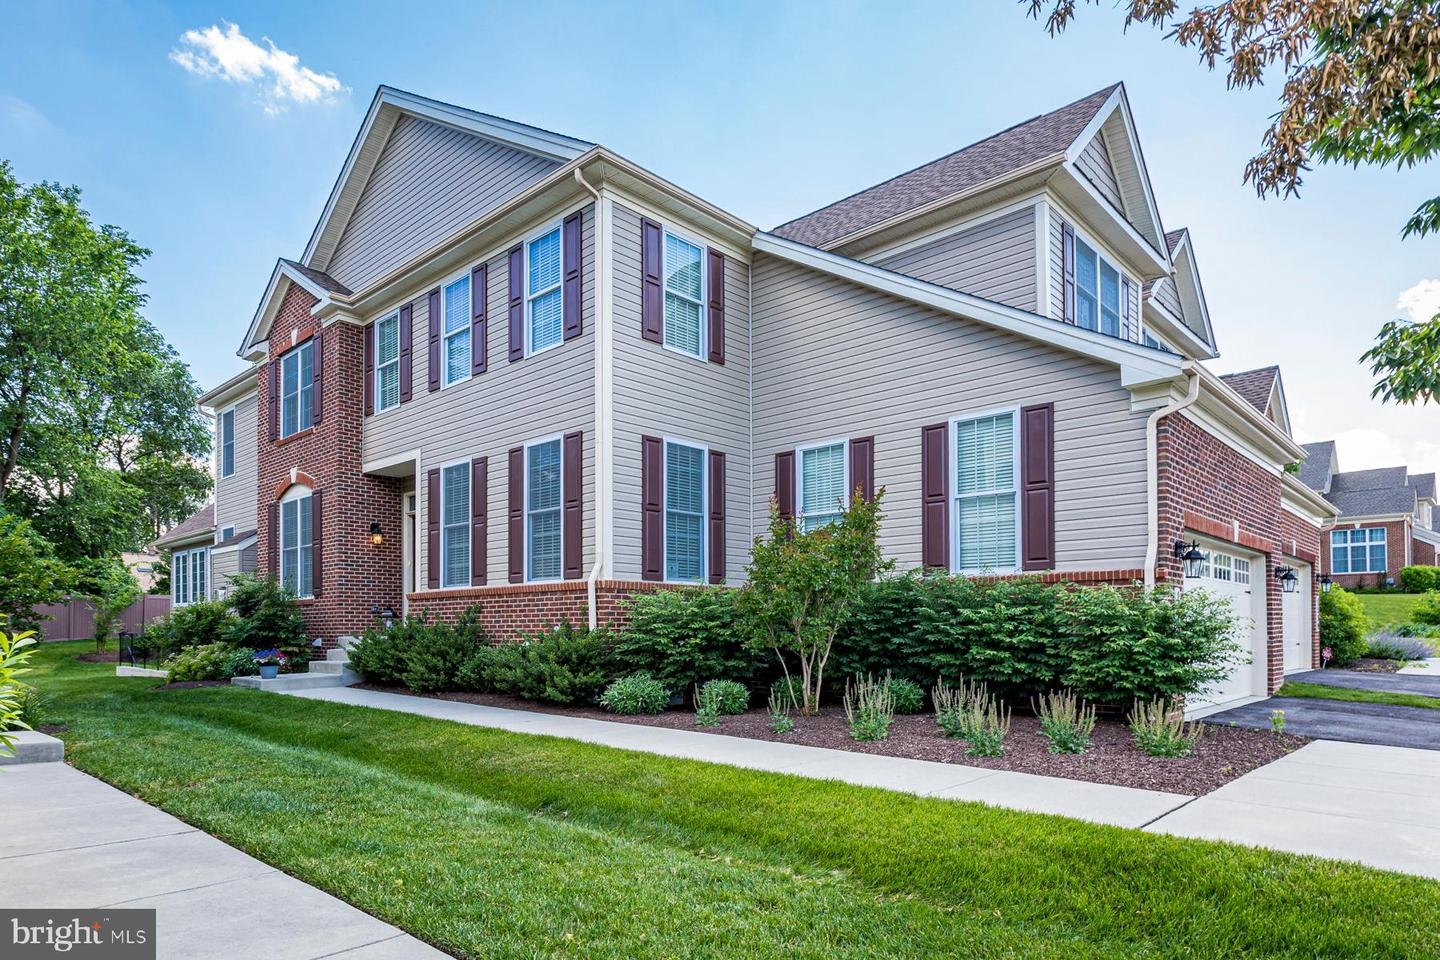 1337 Grand Canopy Dr Severn MD 21144